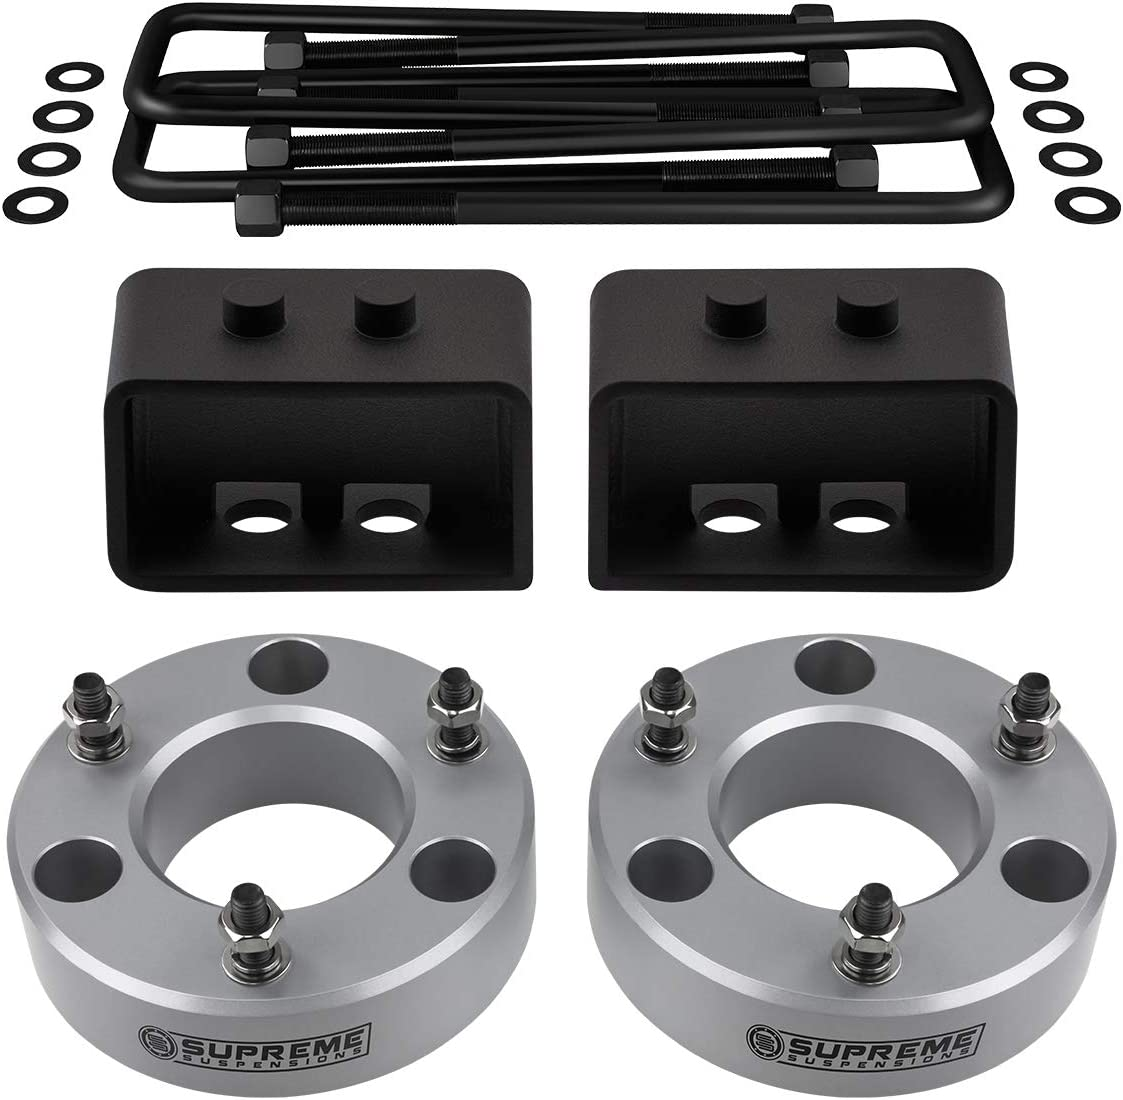 4WD Full Lift Kit for 2004-2020 Ford F-150 1.5 Rear Lift Steel Blocks Supreme Suspensions 2 Front Aircraft Billet Strut Spacers U-Bolts Black